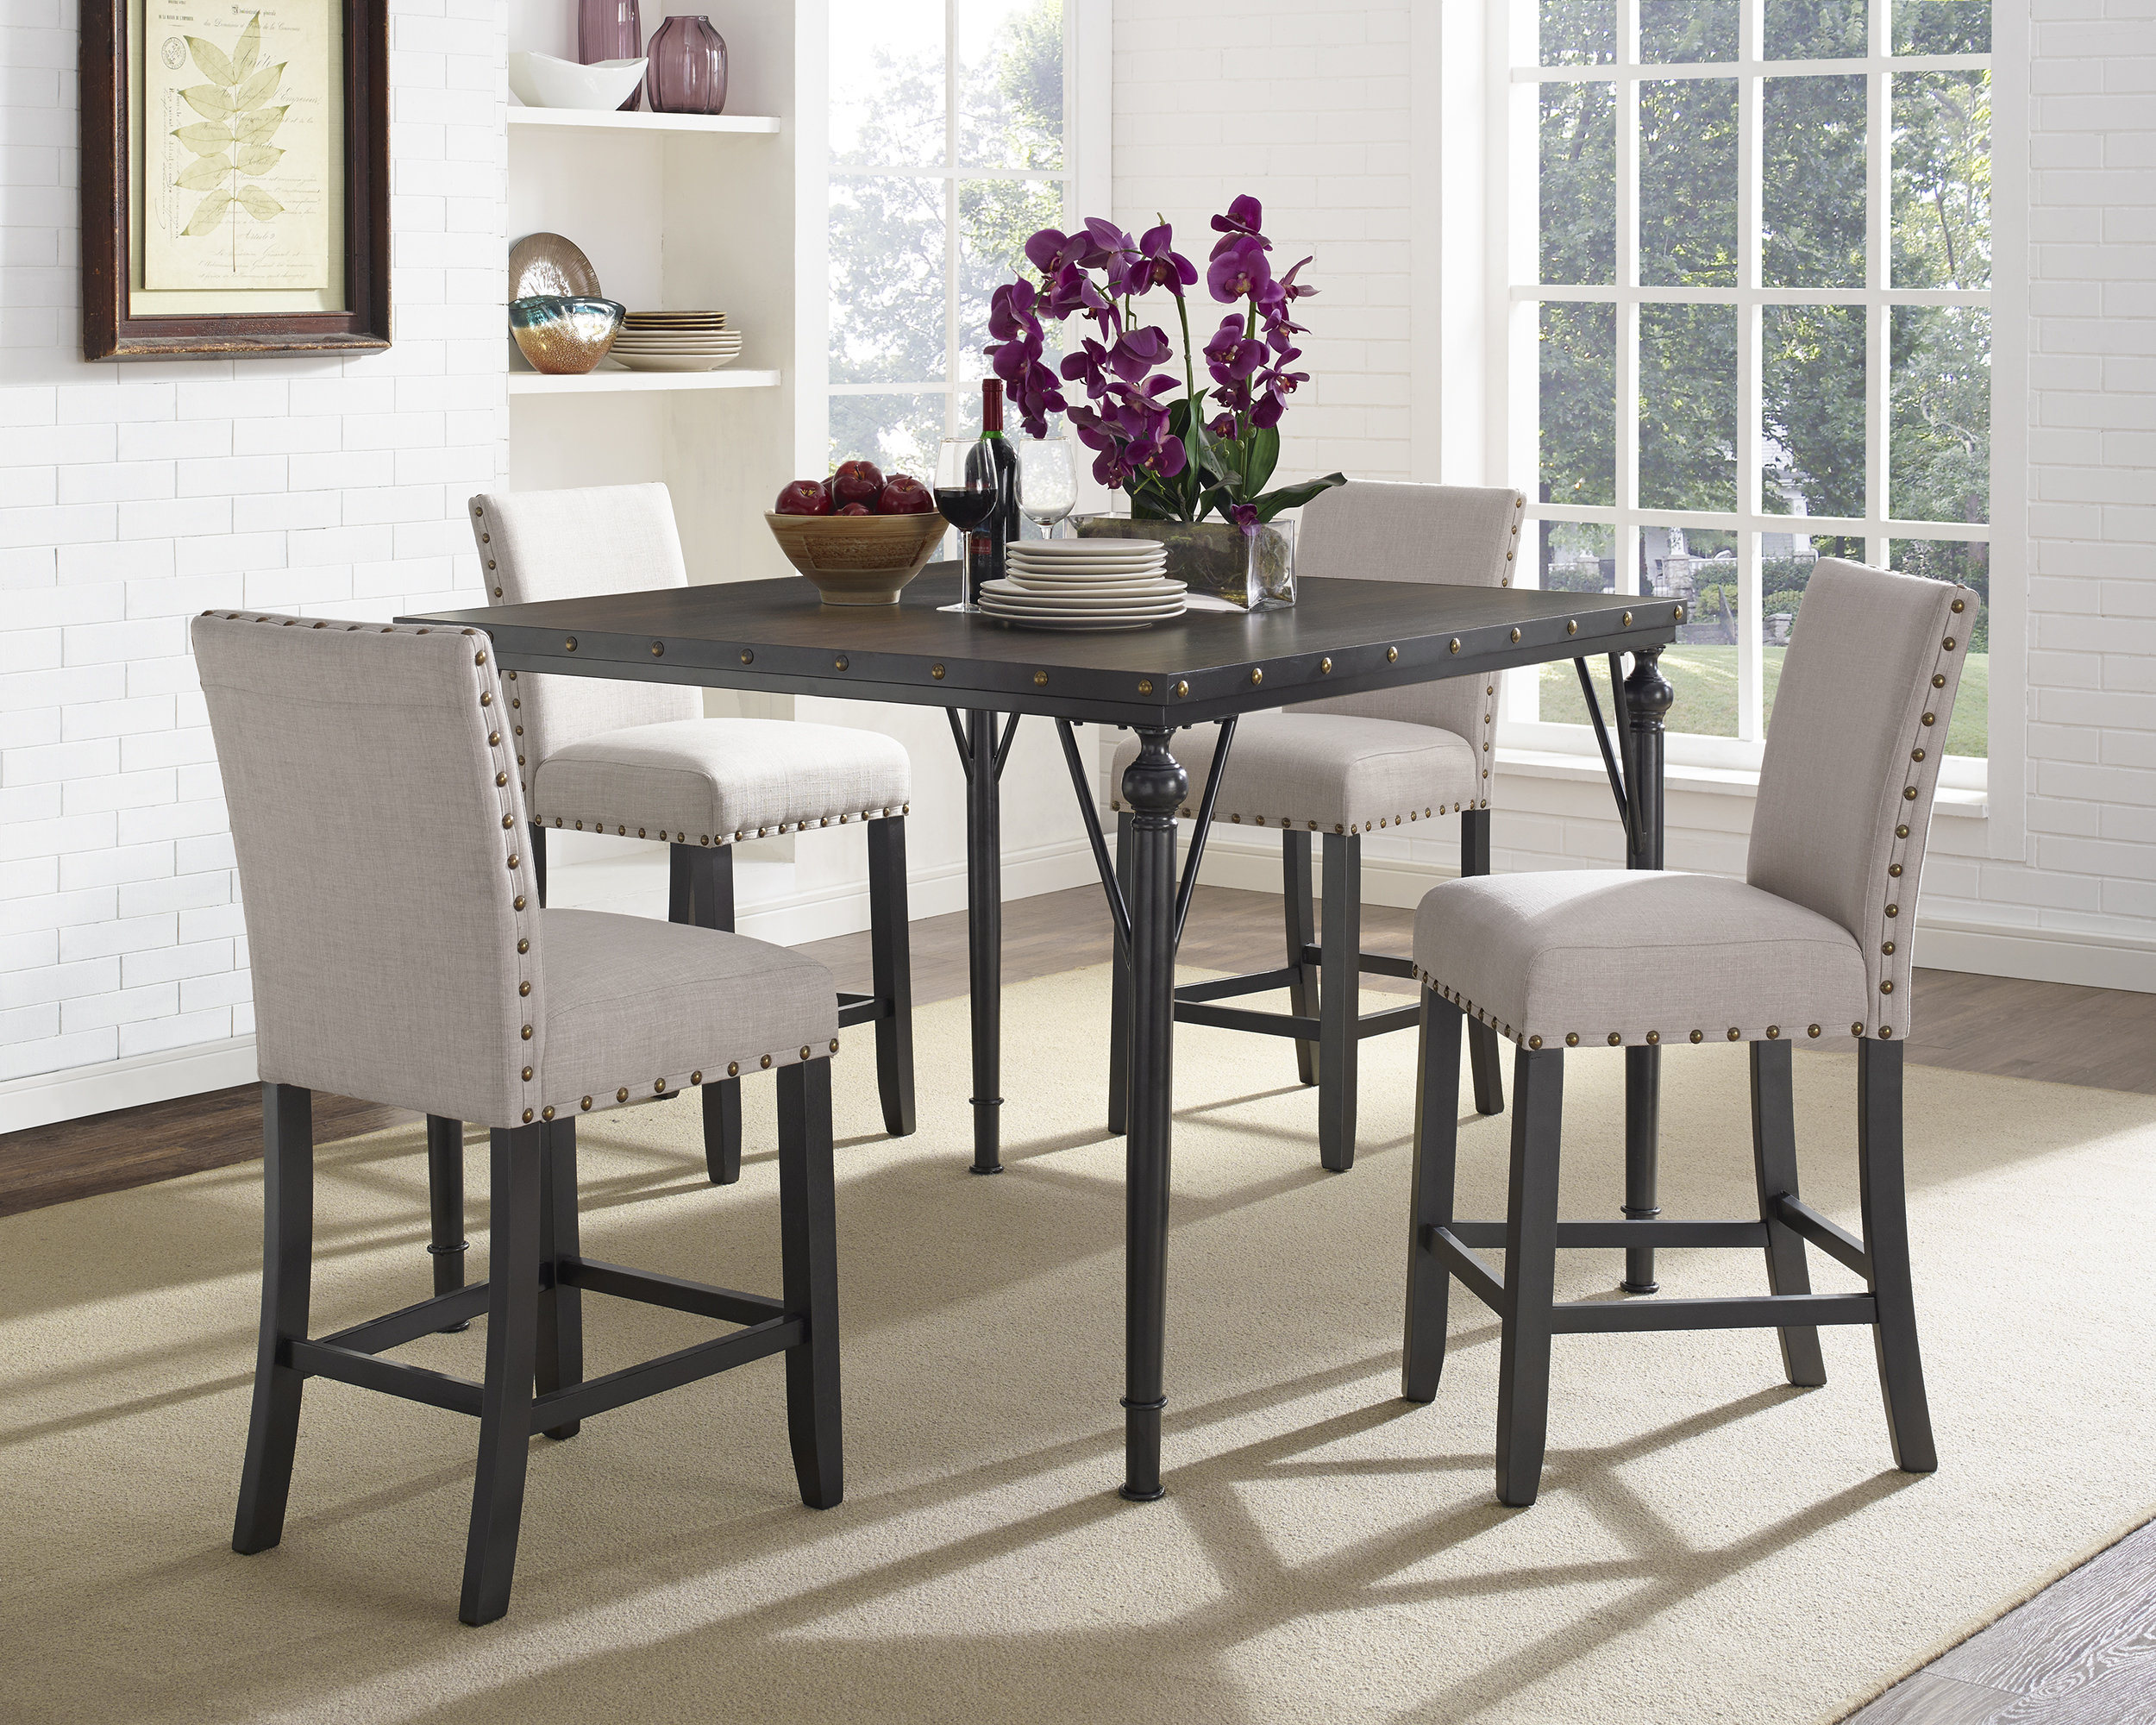 Haysi Wood Counter Height 5 Piece Dining Set With Fabric Nailhead Chairs Intended For Recent Bryson 5 Piece Dining Sets (Image 15 of 20)